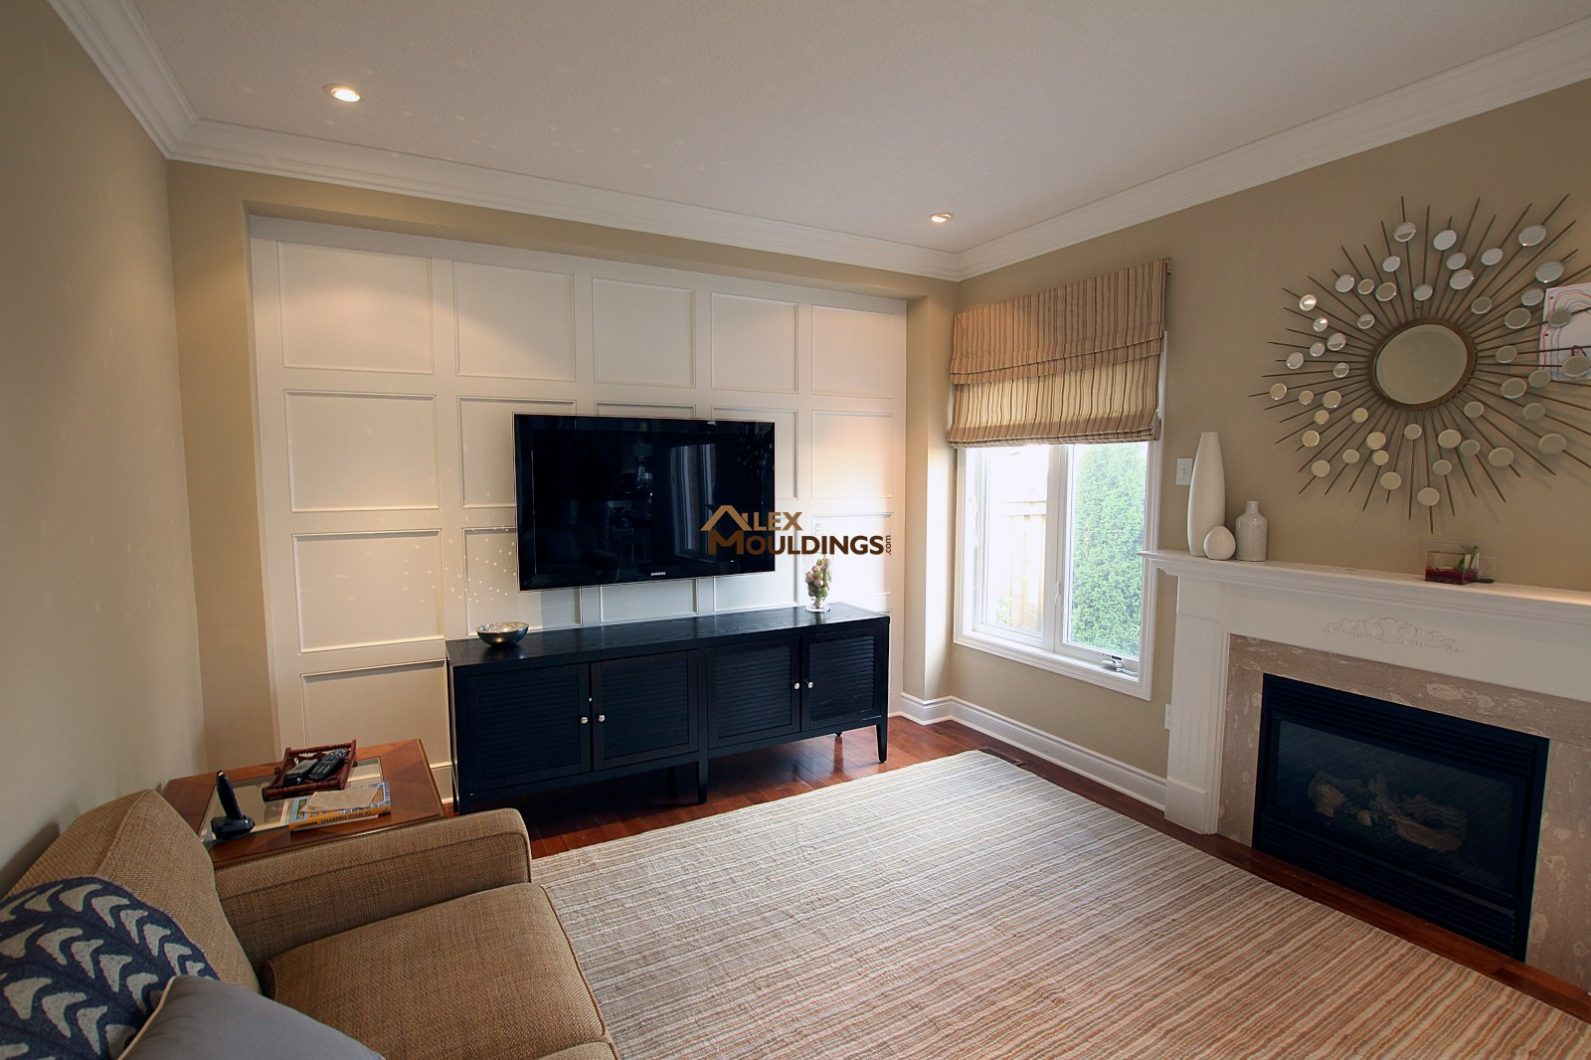 WALL PANELS WAINSCOTING - Raised | Recessed | Flat ...